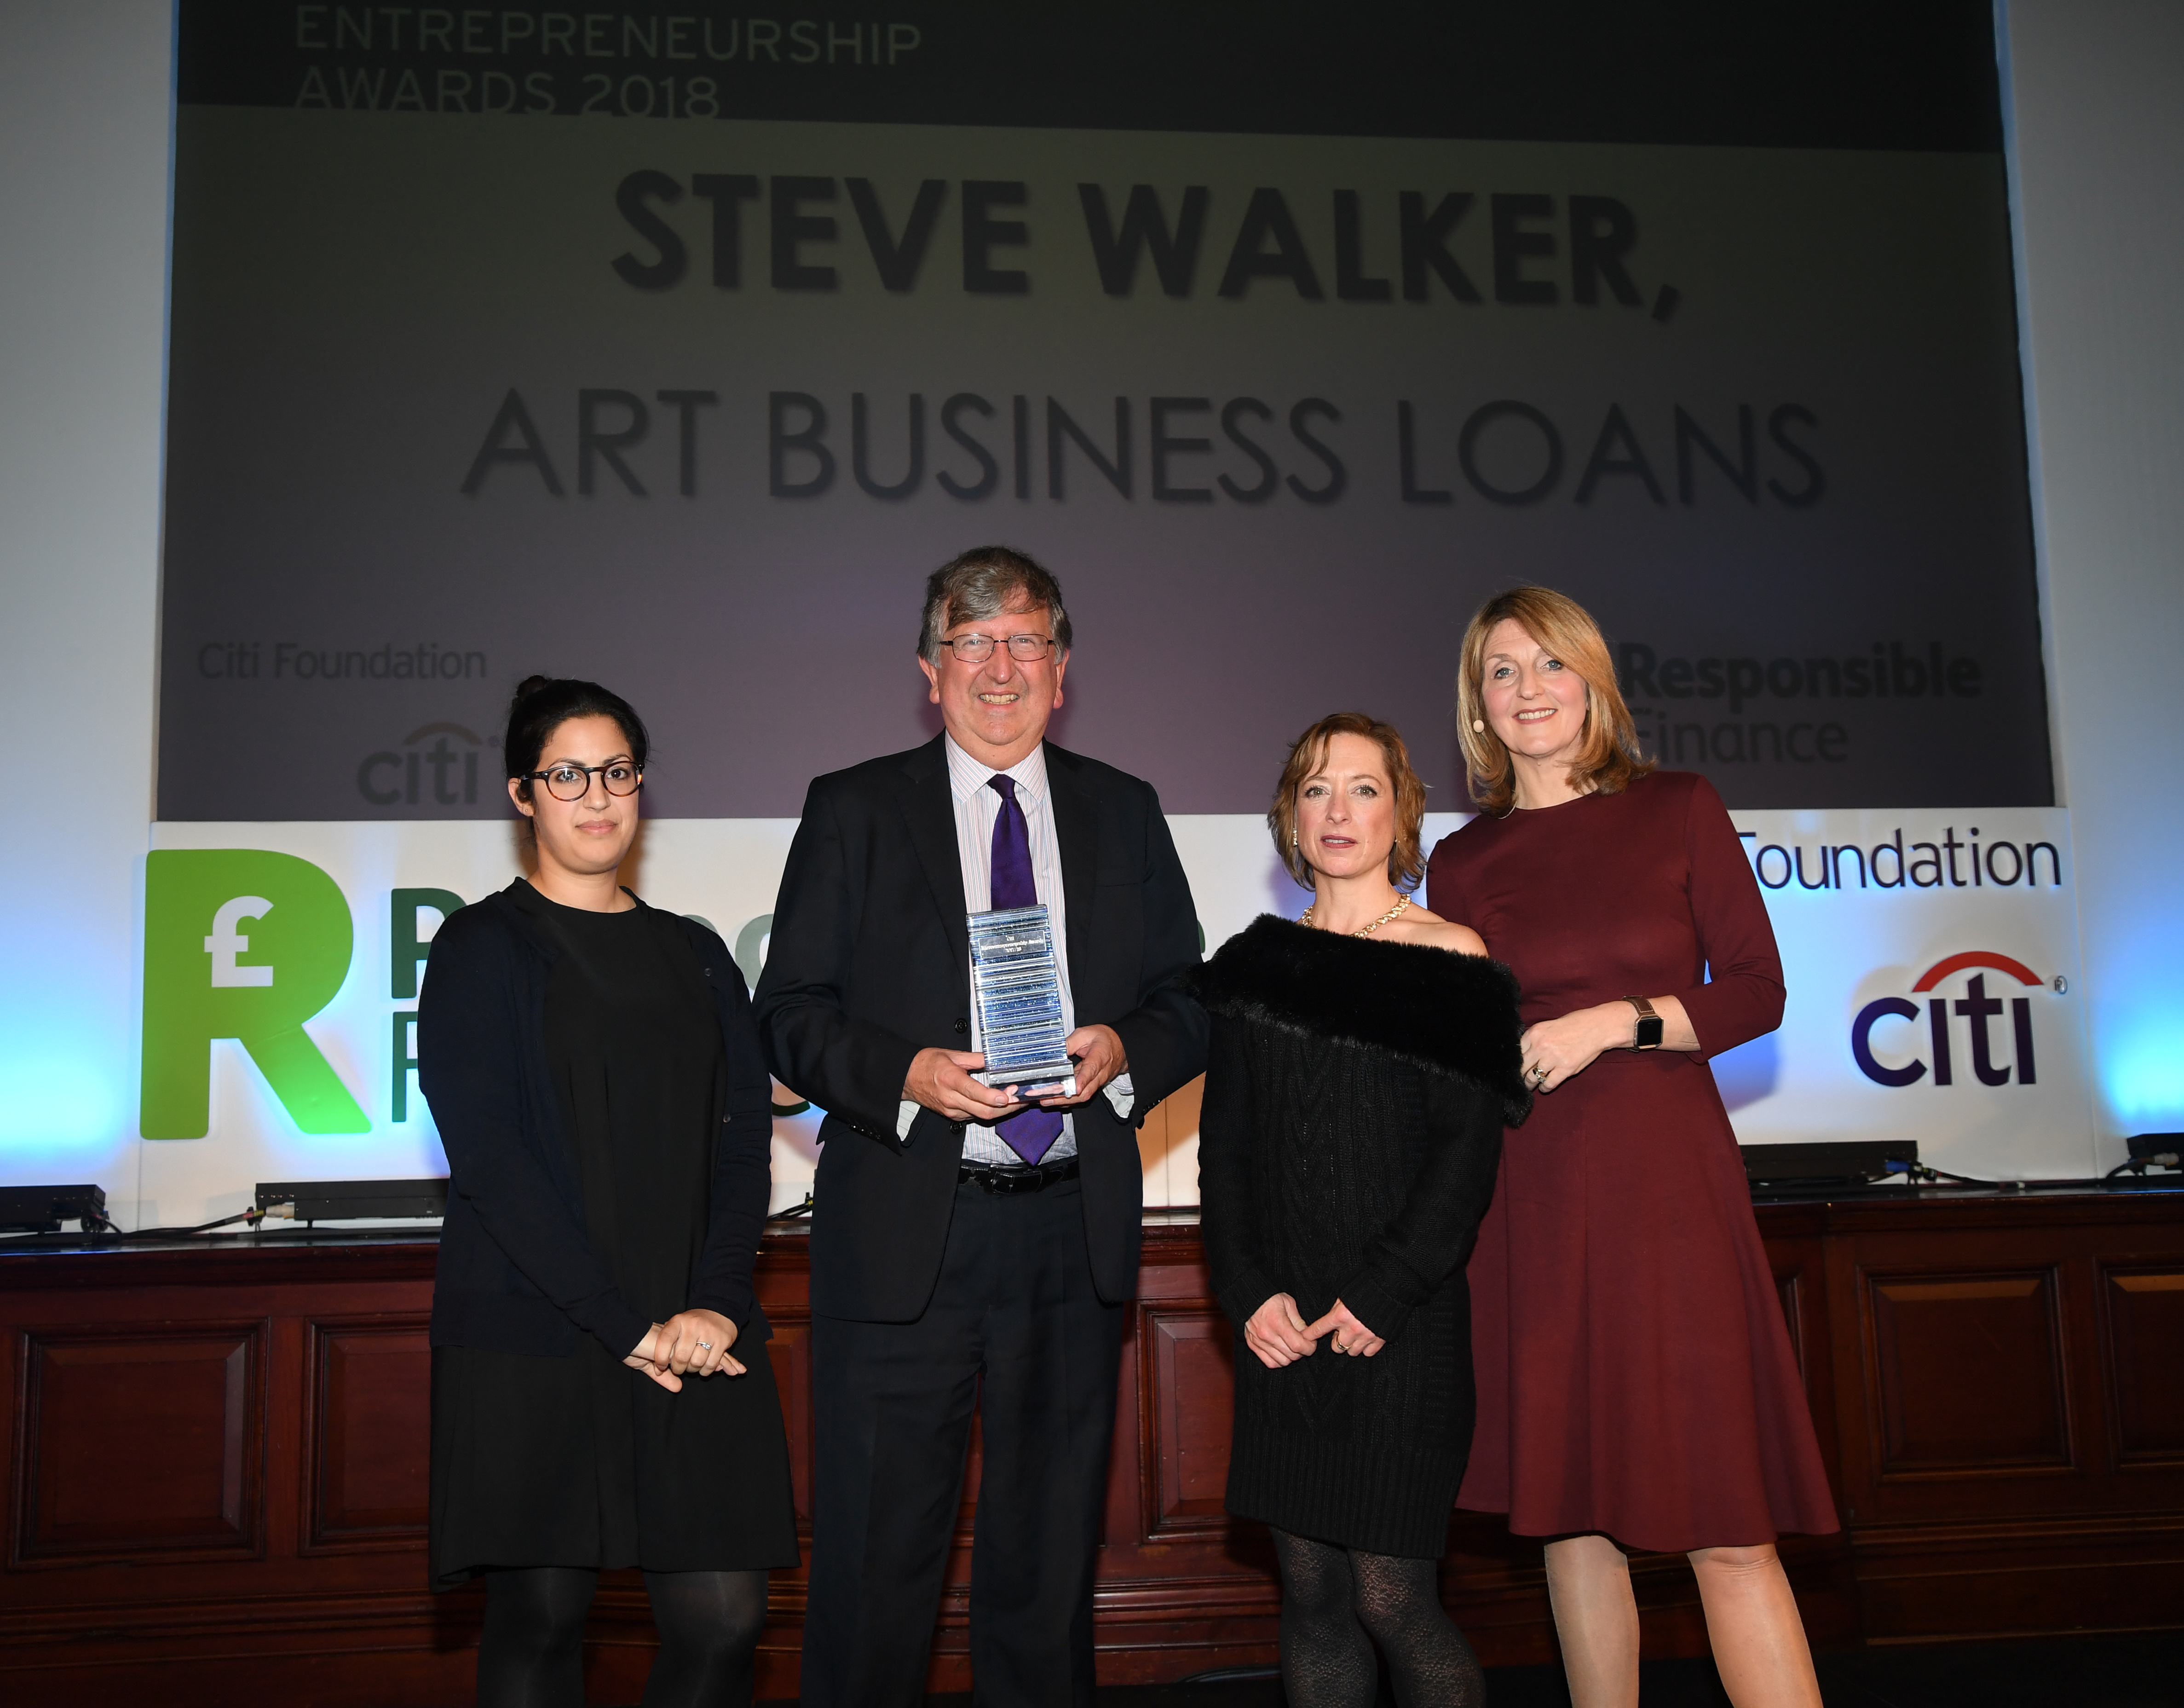 Dr Steve Walker receives Responsible Finance Leader of the Year Award 2018